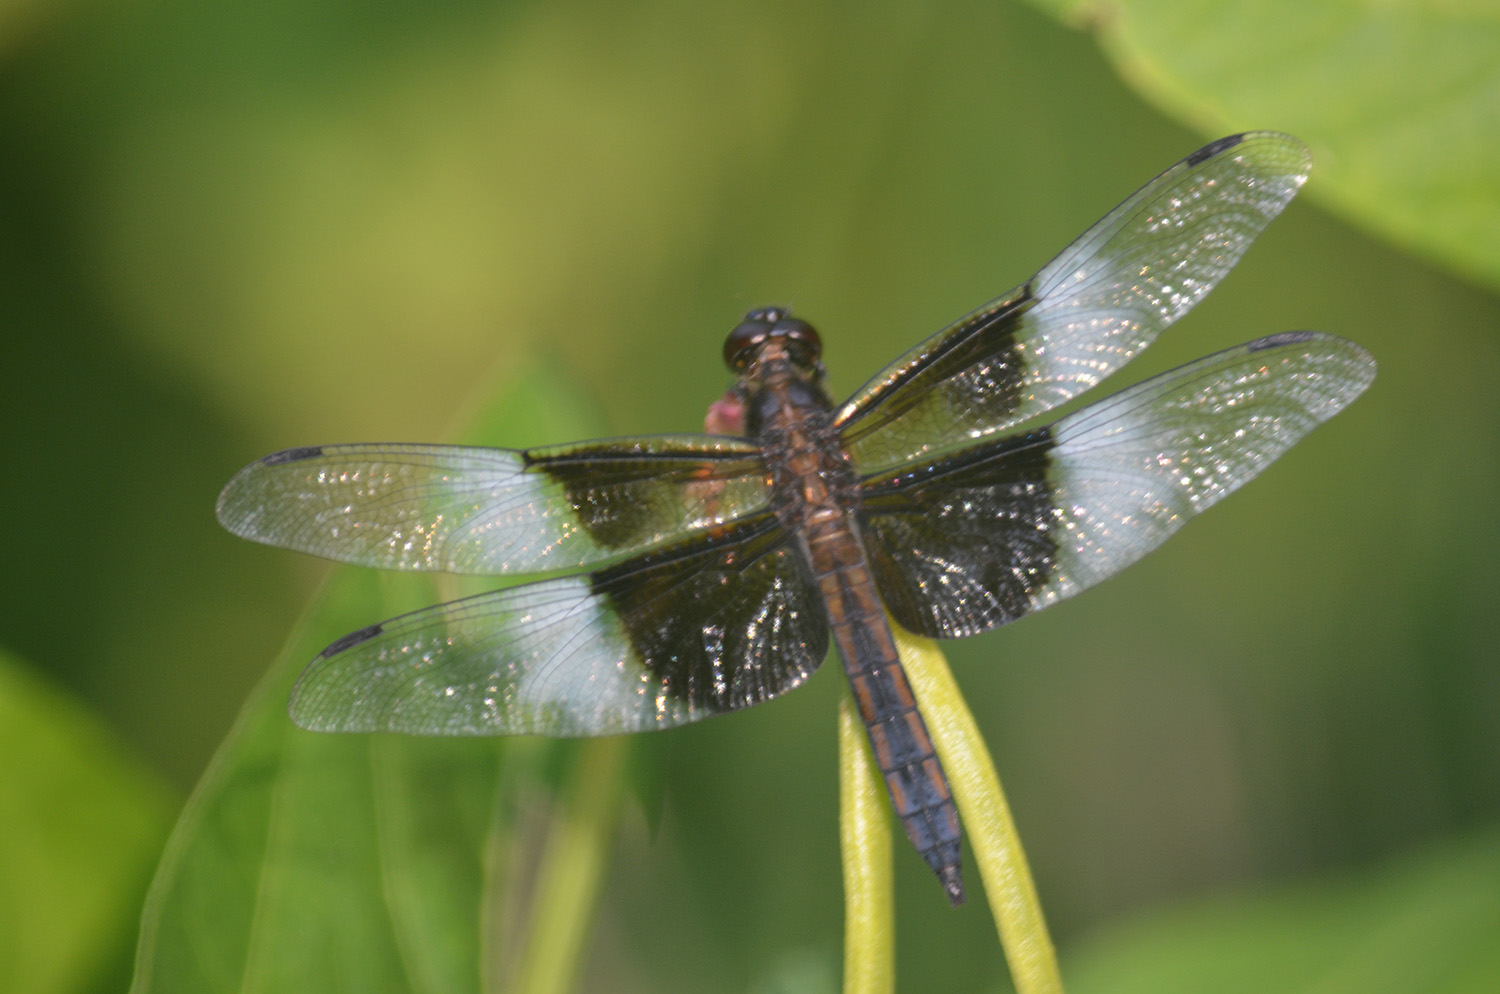 The wax beans in Bob Demkowicz's Winthrop vegetable garden provide a convenient layover spot for a dragonfly in need of a short rest.